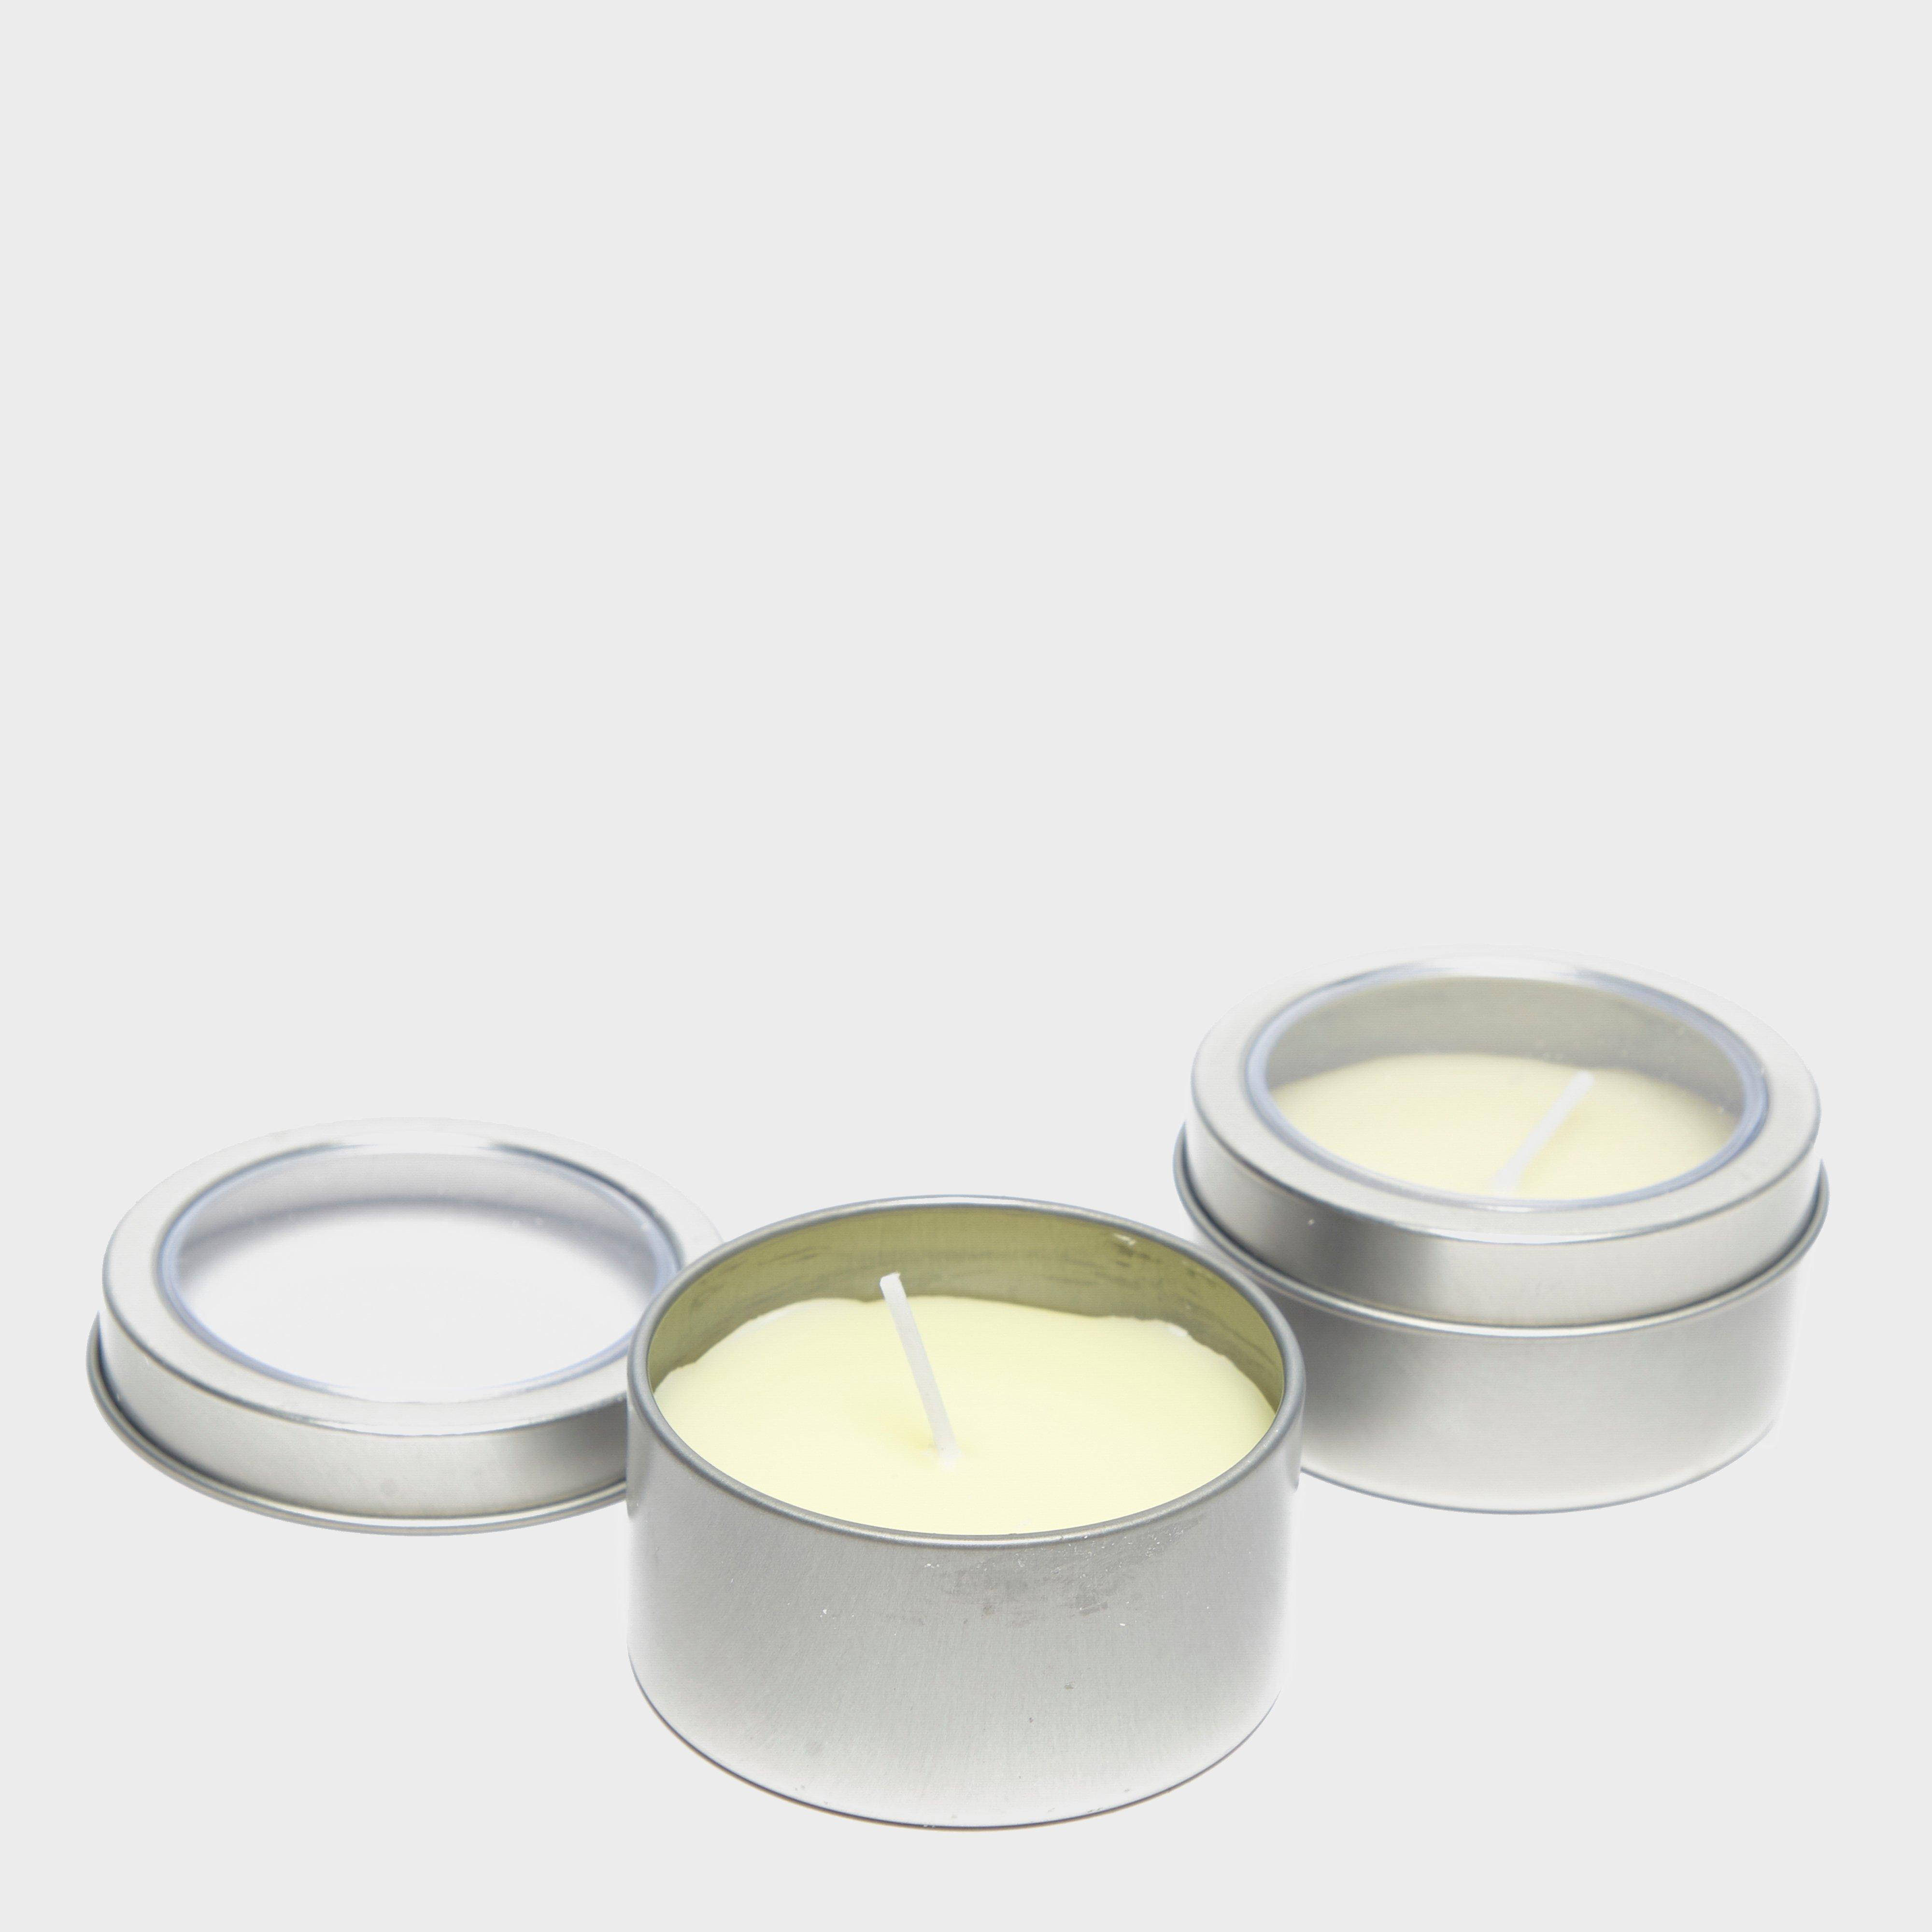 Summit Summit Citronella Candle 2 Pack - N/A, N/A